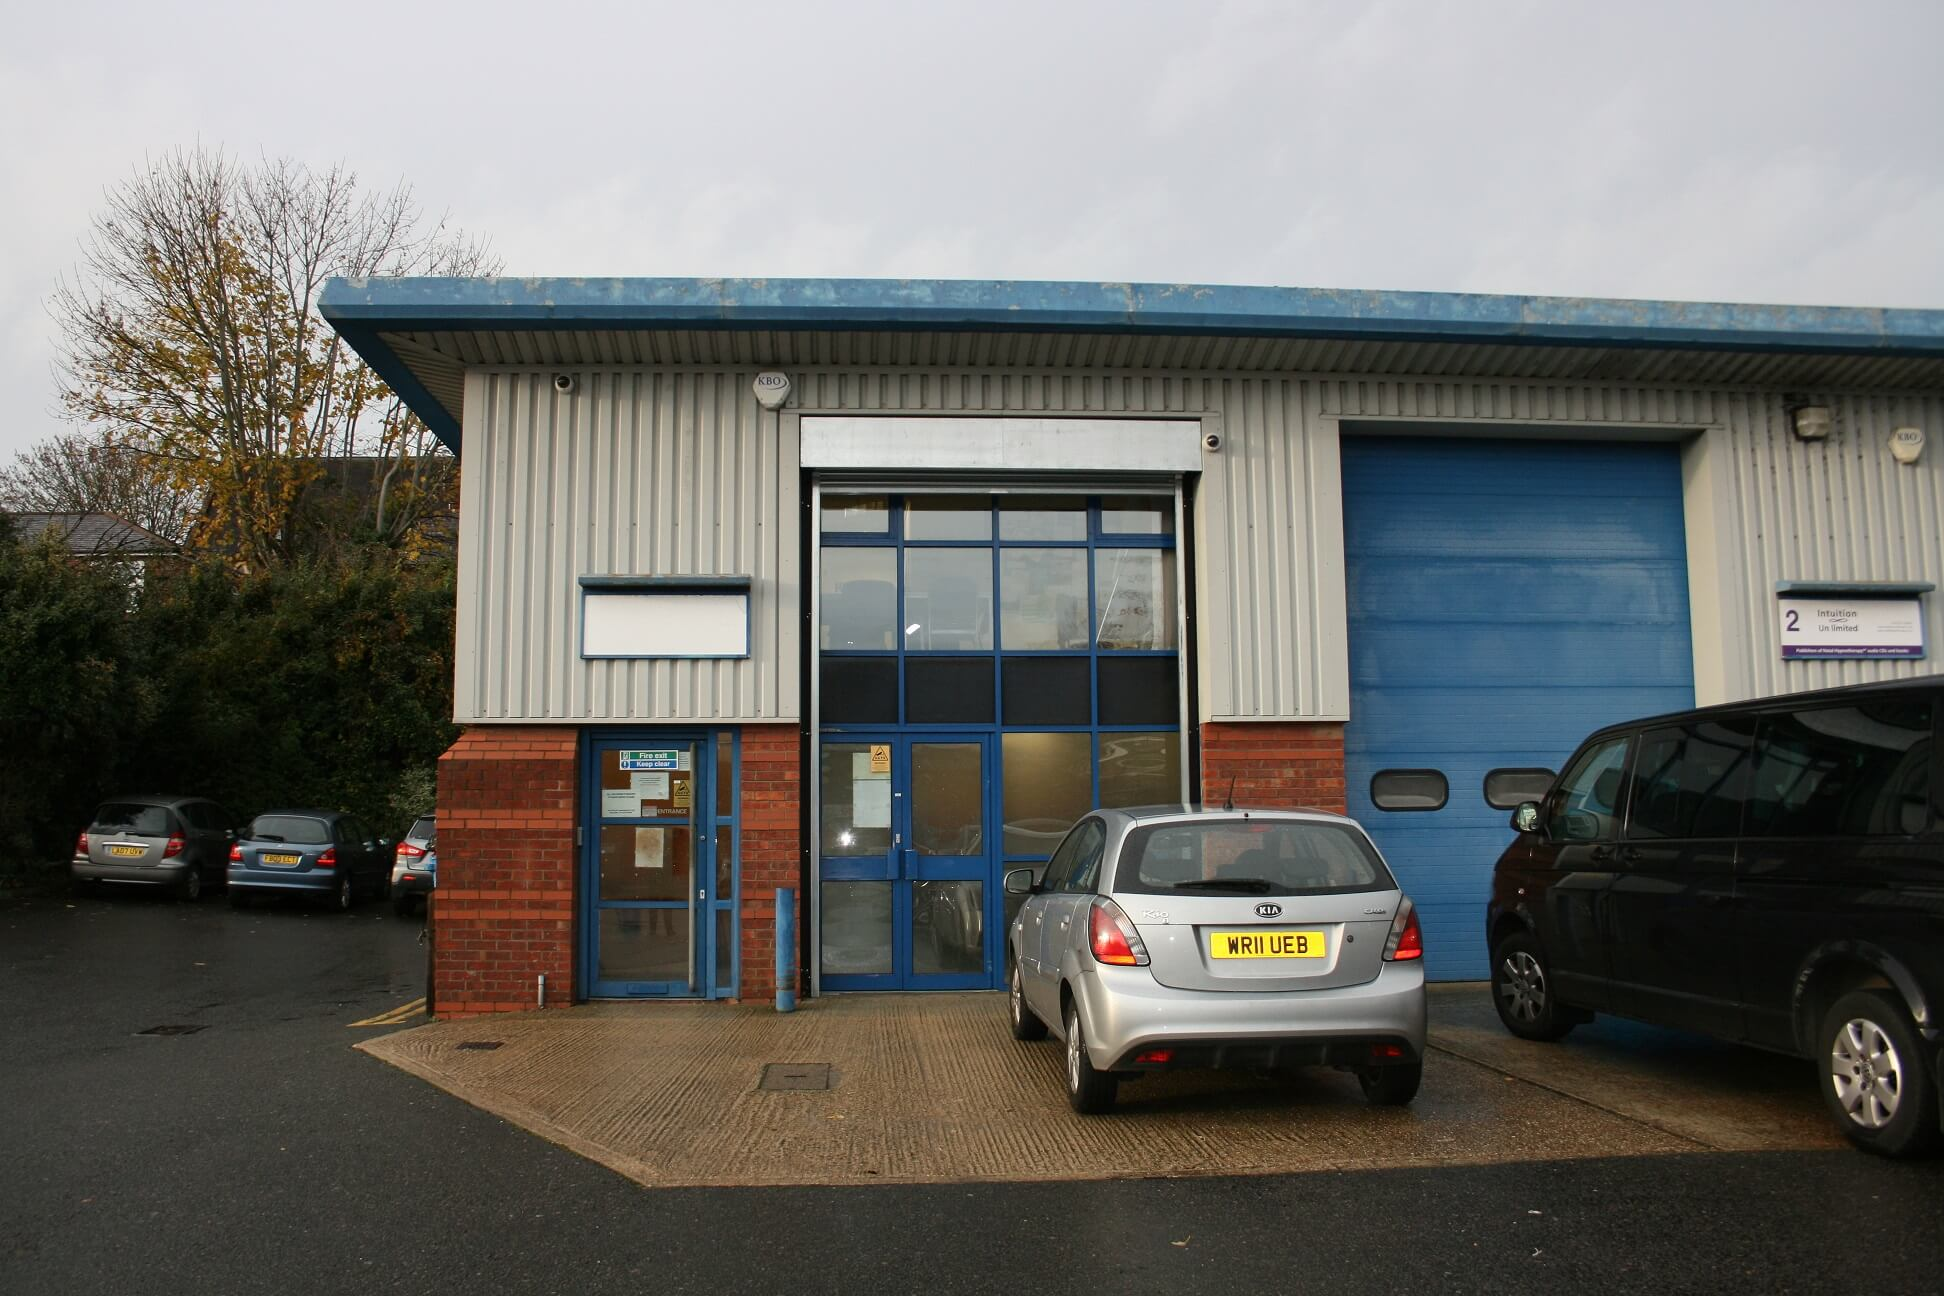 Freehold sale of Farnham high tech property